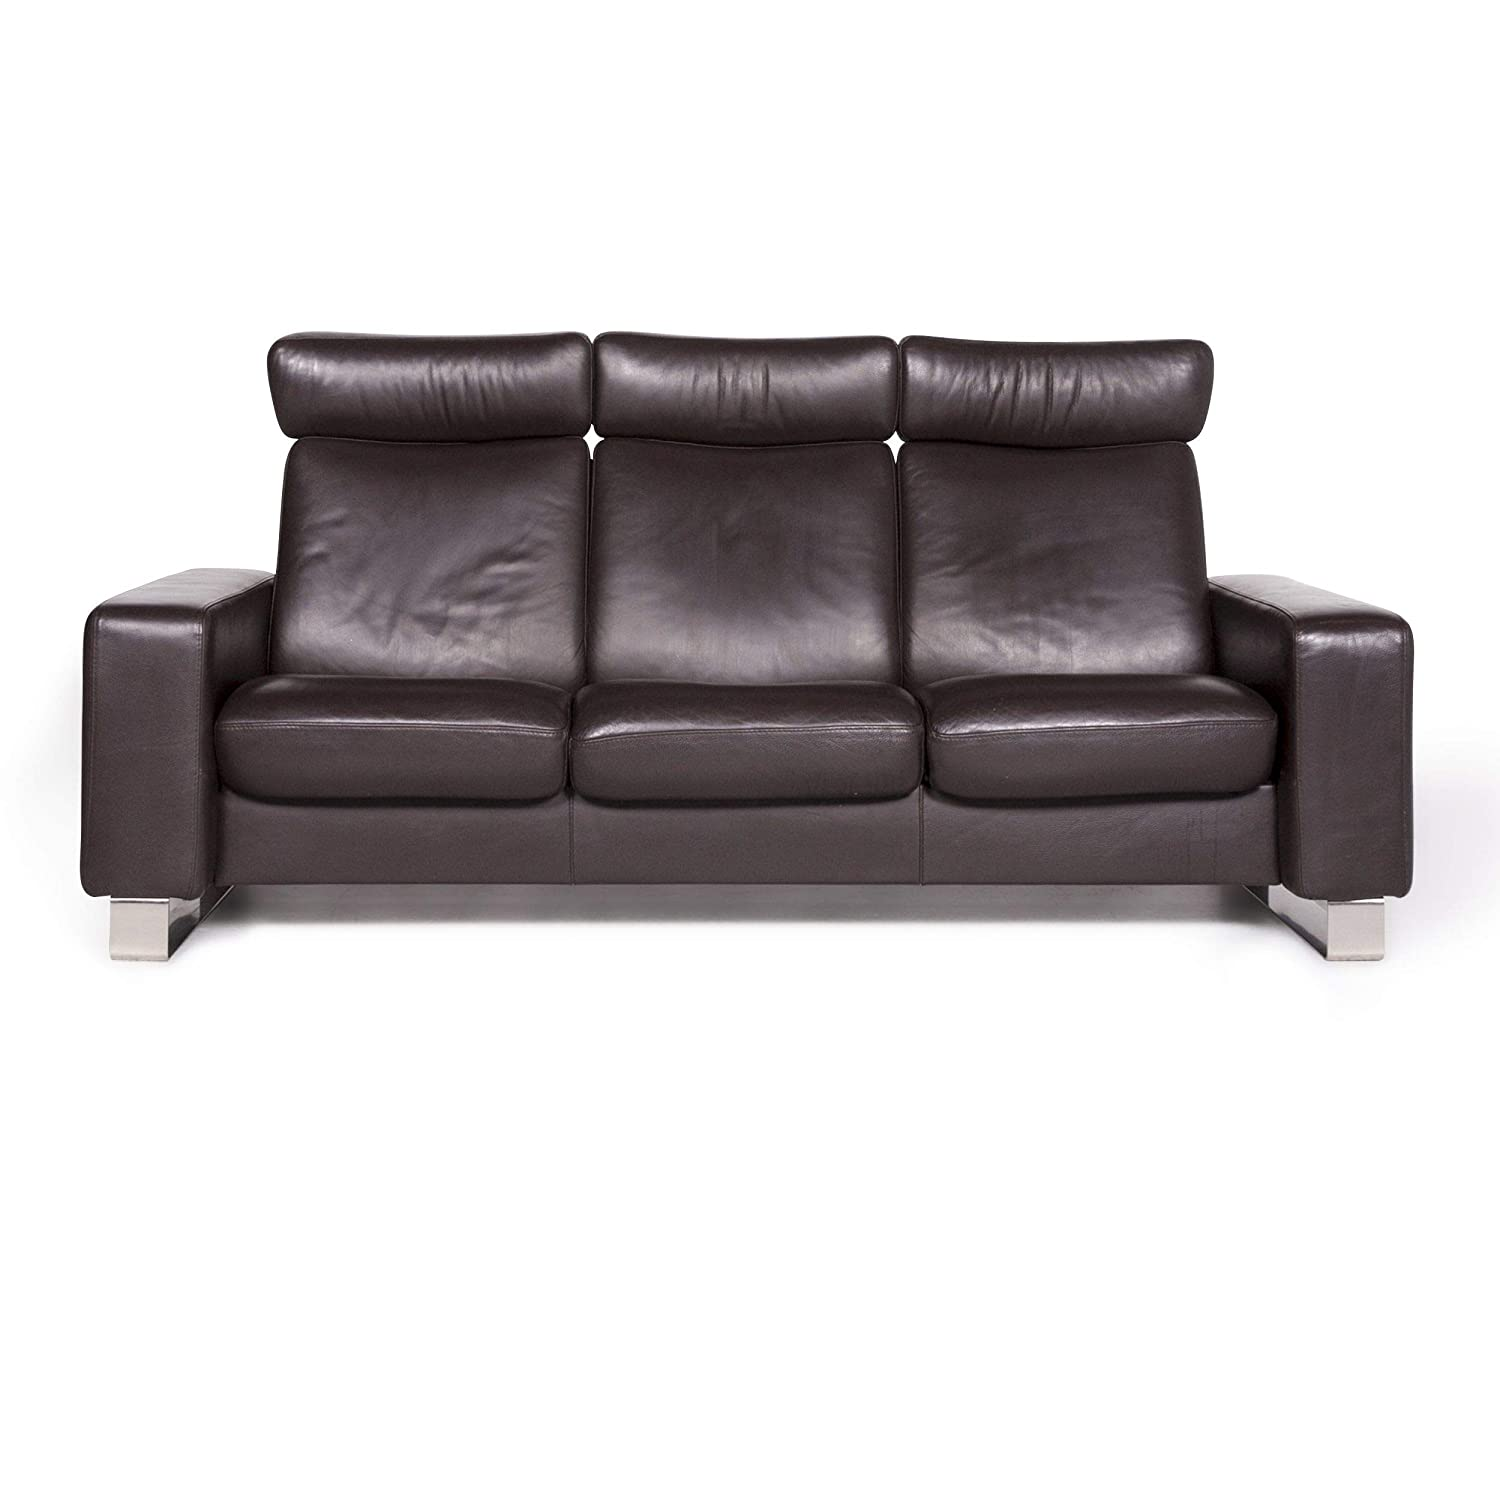 Stressless Designer Leather Sofa Brown Three-Seater Couch ...